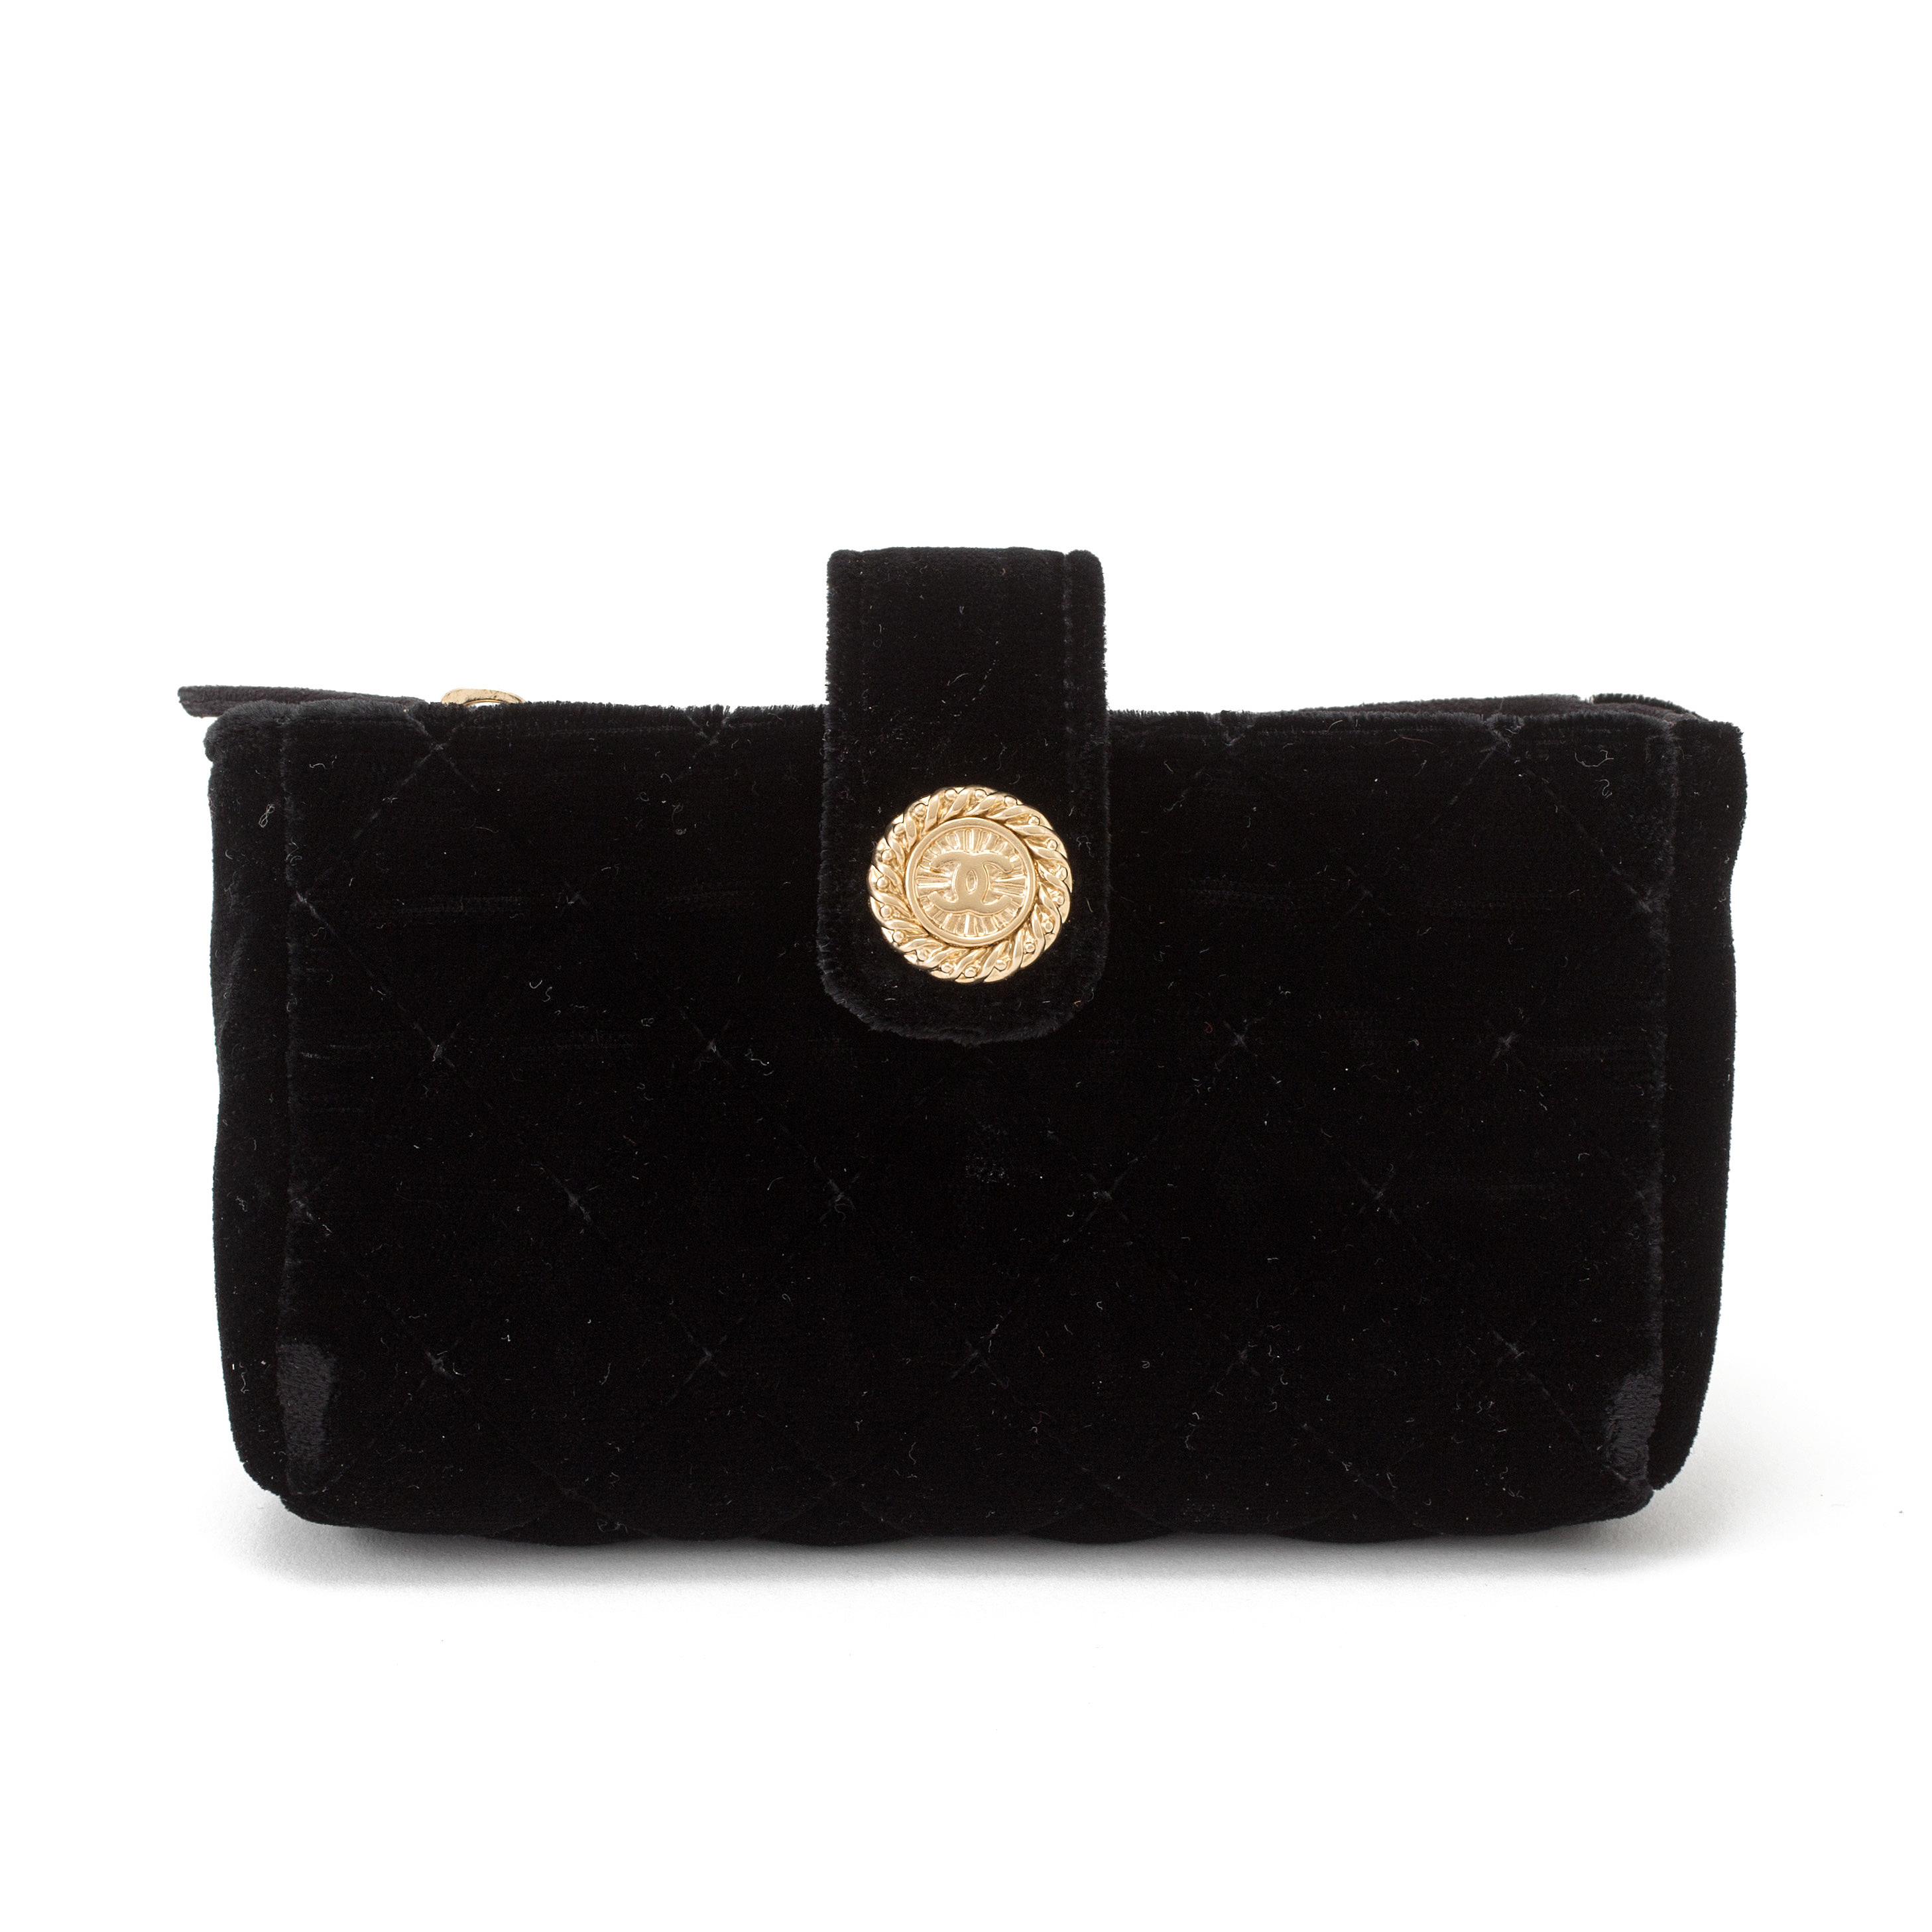 A black velvet eveningbag purse by Chanel 2010 2011. - Bukowskis 38dfc9c1fc053